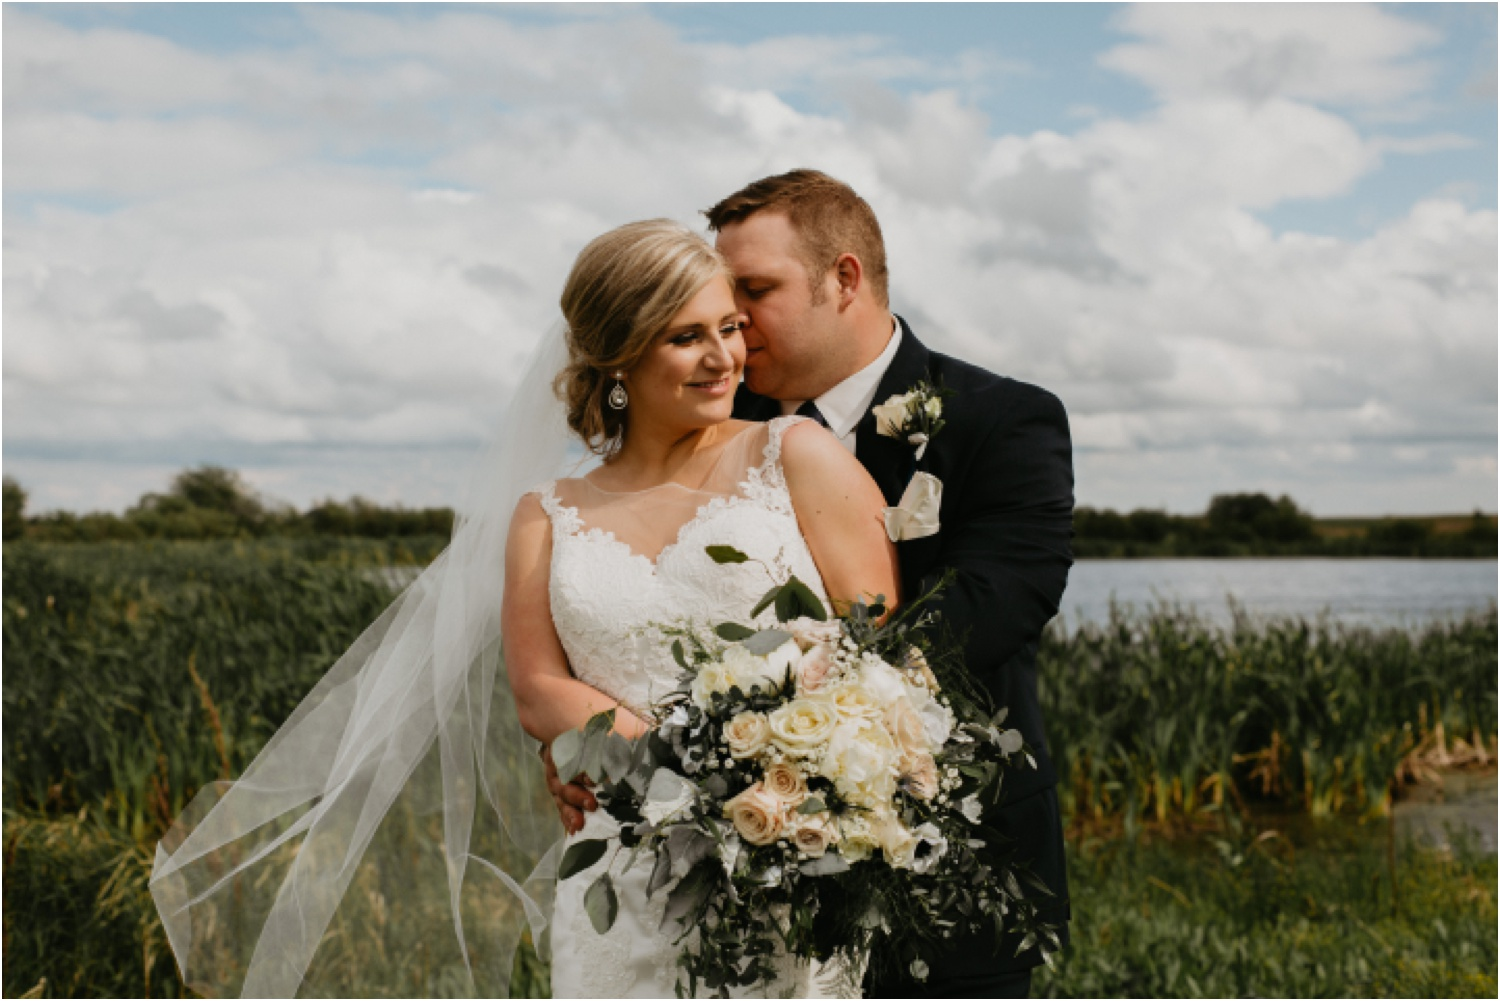 Kailey_Carter_Saskatchewan_Wedding (324 of 727).jpg